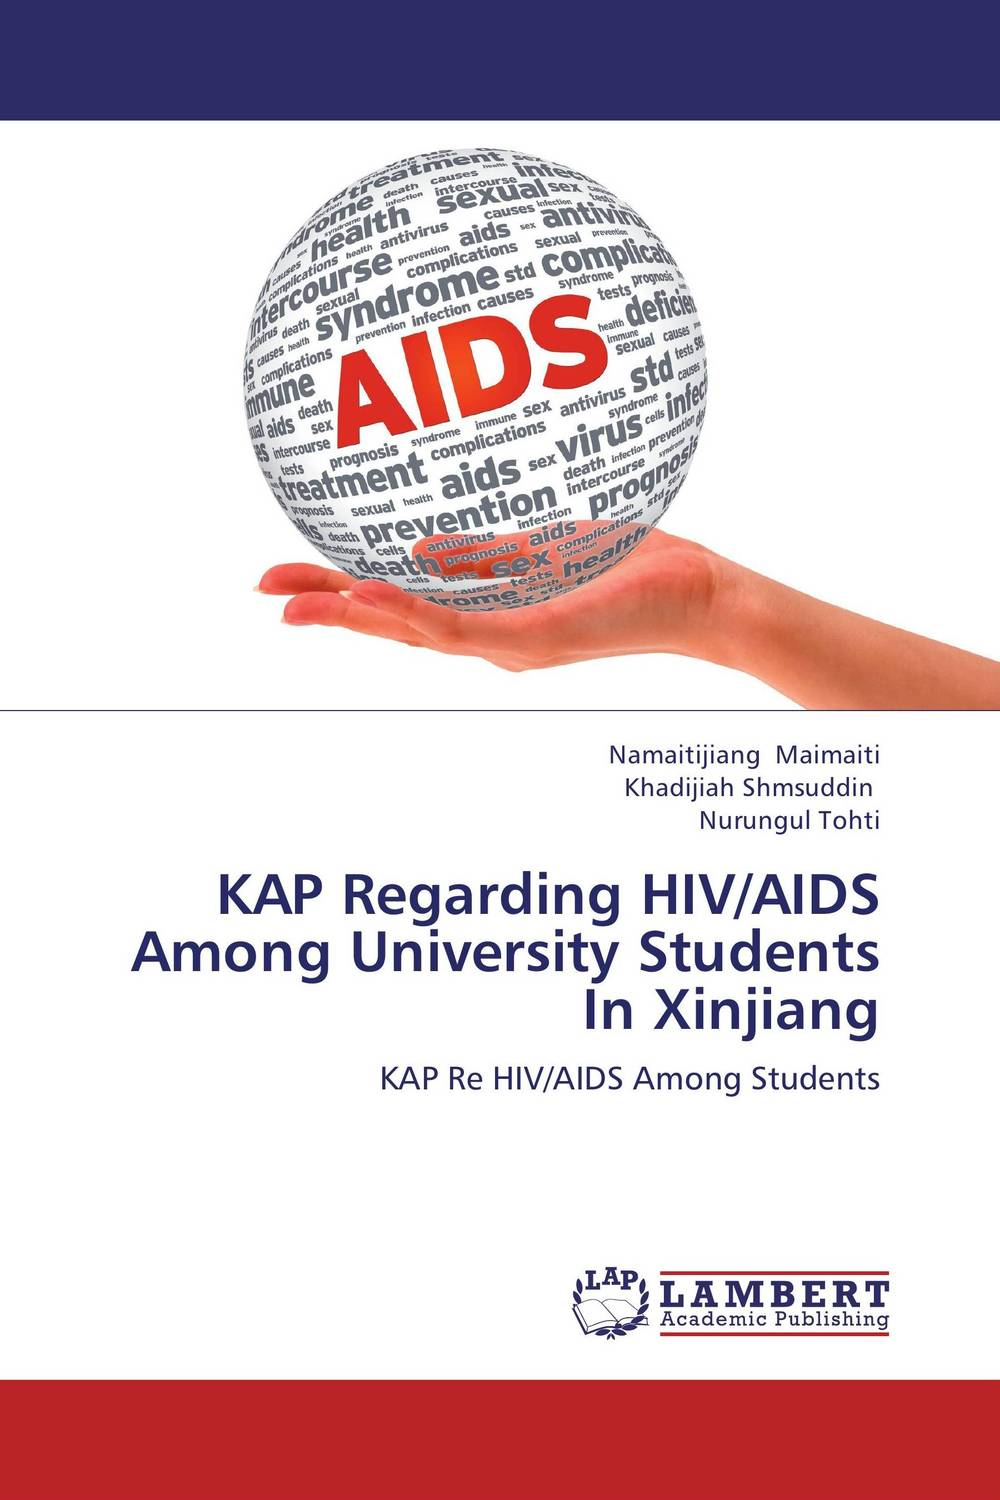 цена на KAP Regarding HIV/AIDS Among University Students In  Xinjiang